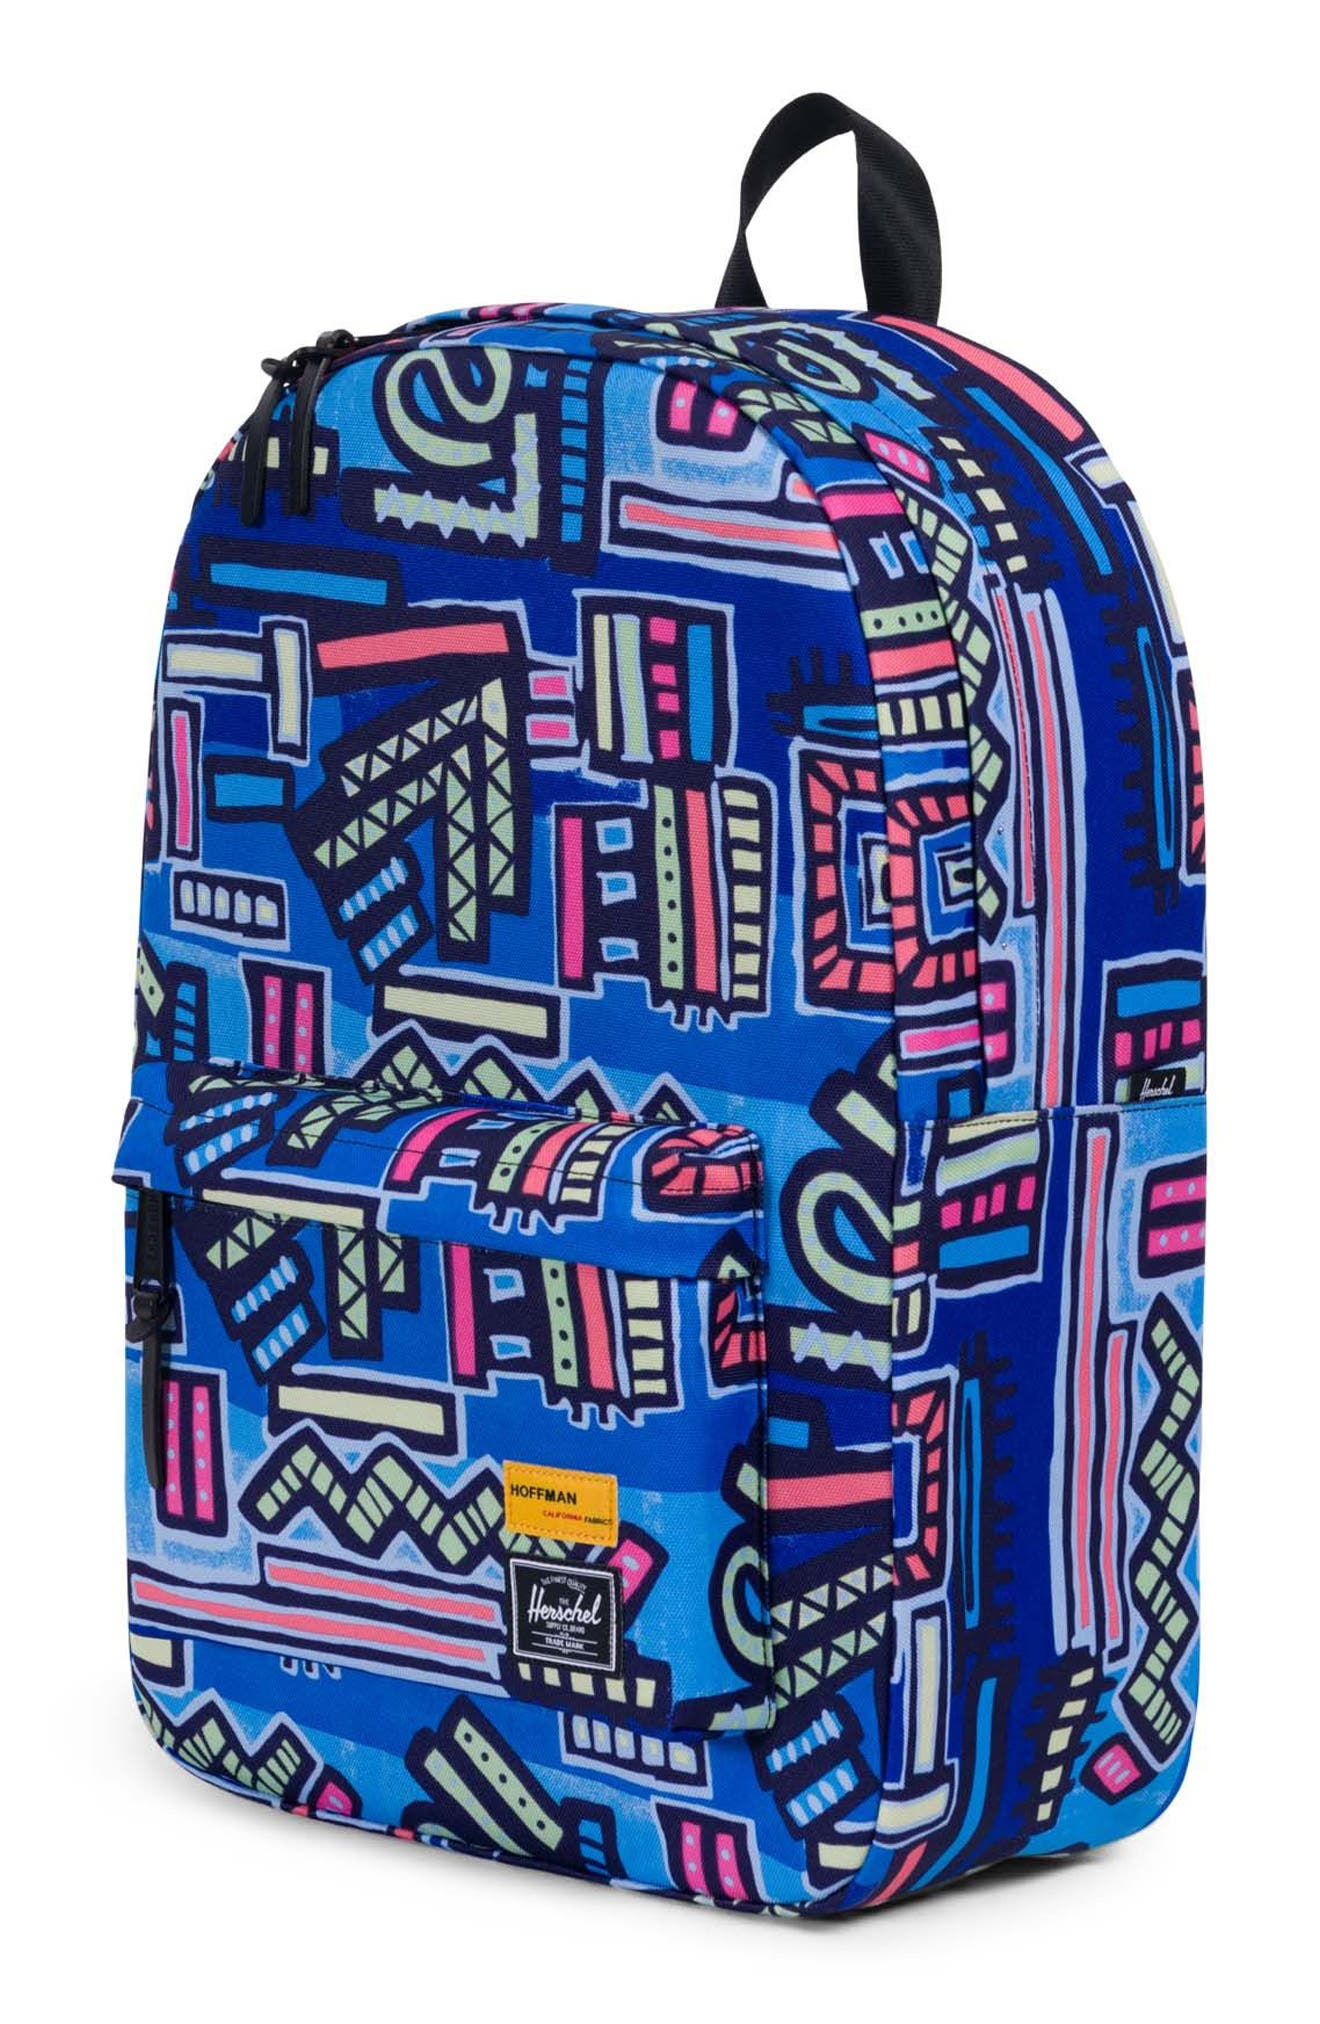 Winlaw - Hoffman Backpack,                             Alternate thumbnail 2, color,                             Abstract Geo Blue